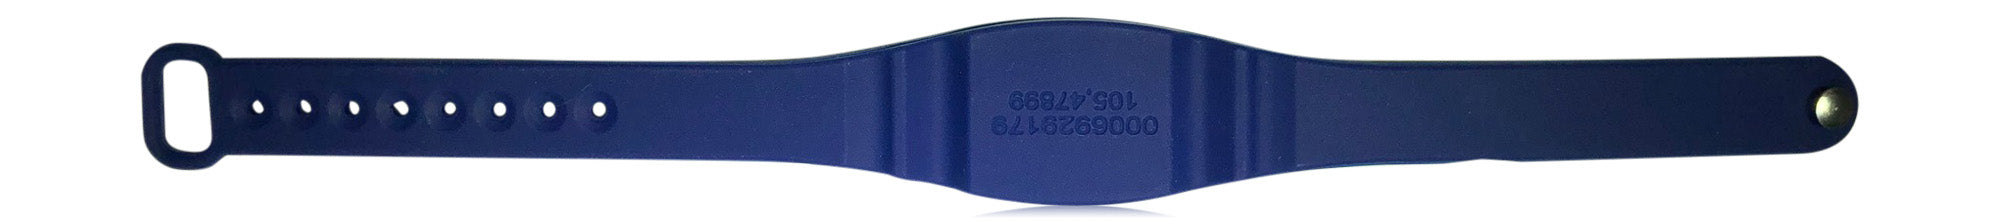 5 Blue Adjustable 26 Bit EM Proximity Wristbands